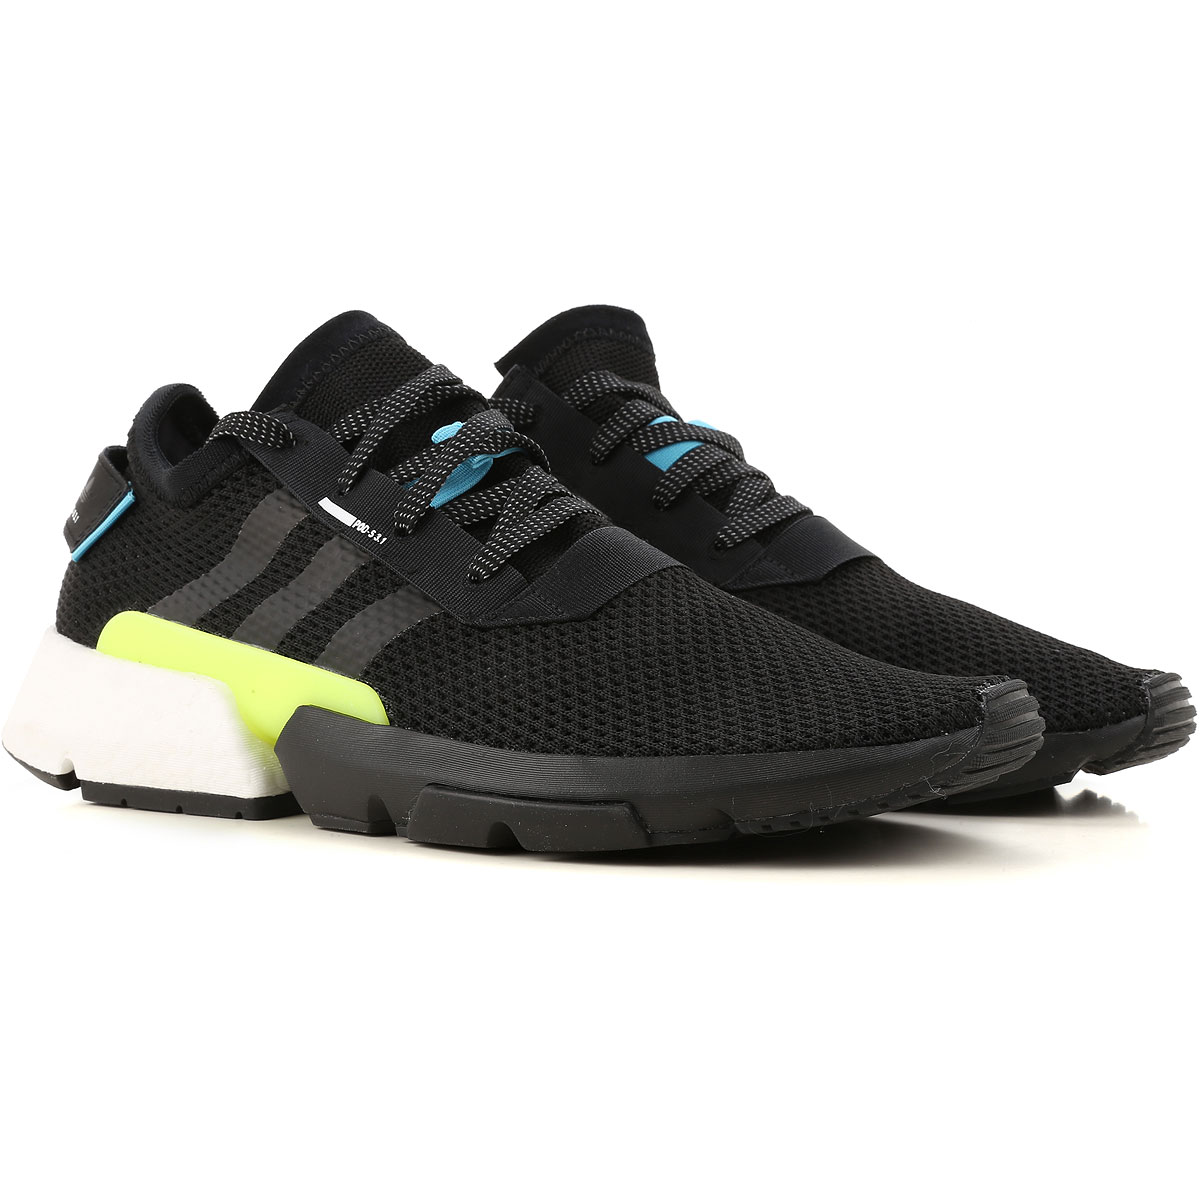 Image of Adidas Sneakers for Men, Black, Fabric, 2017, US 7 - UK 6 - EUR 40 US 7.5 - UK 7 - EU 40.5 US 8 - UK 7.5 - EU 41 US 8 1/2 - UK 8 - EU 42 US 9.5 - UK 9 - EU 43 US 10 - UK 9 1/2 - EU 44